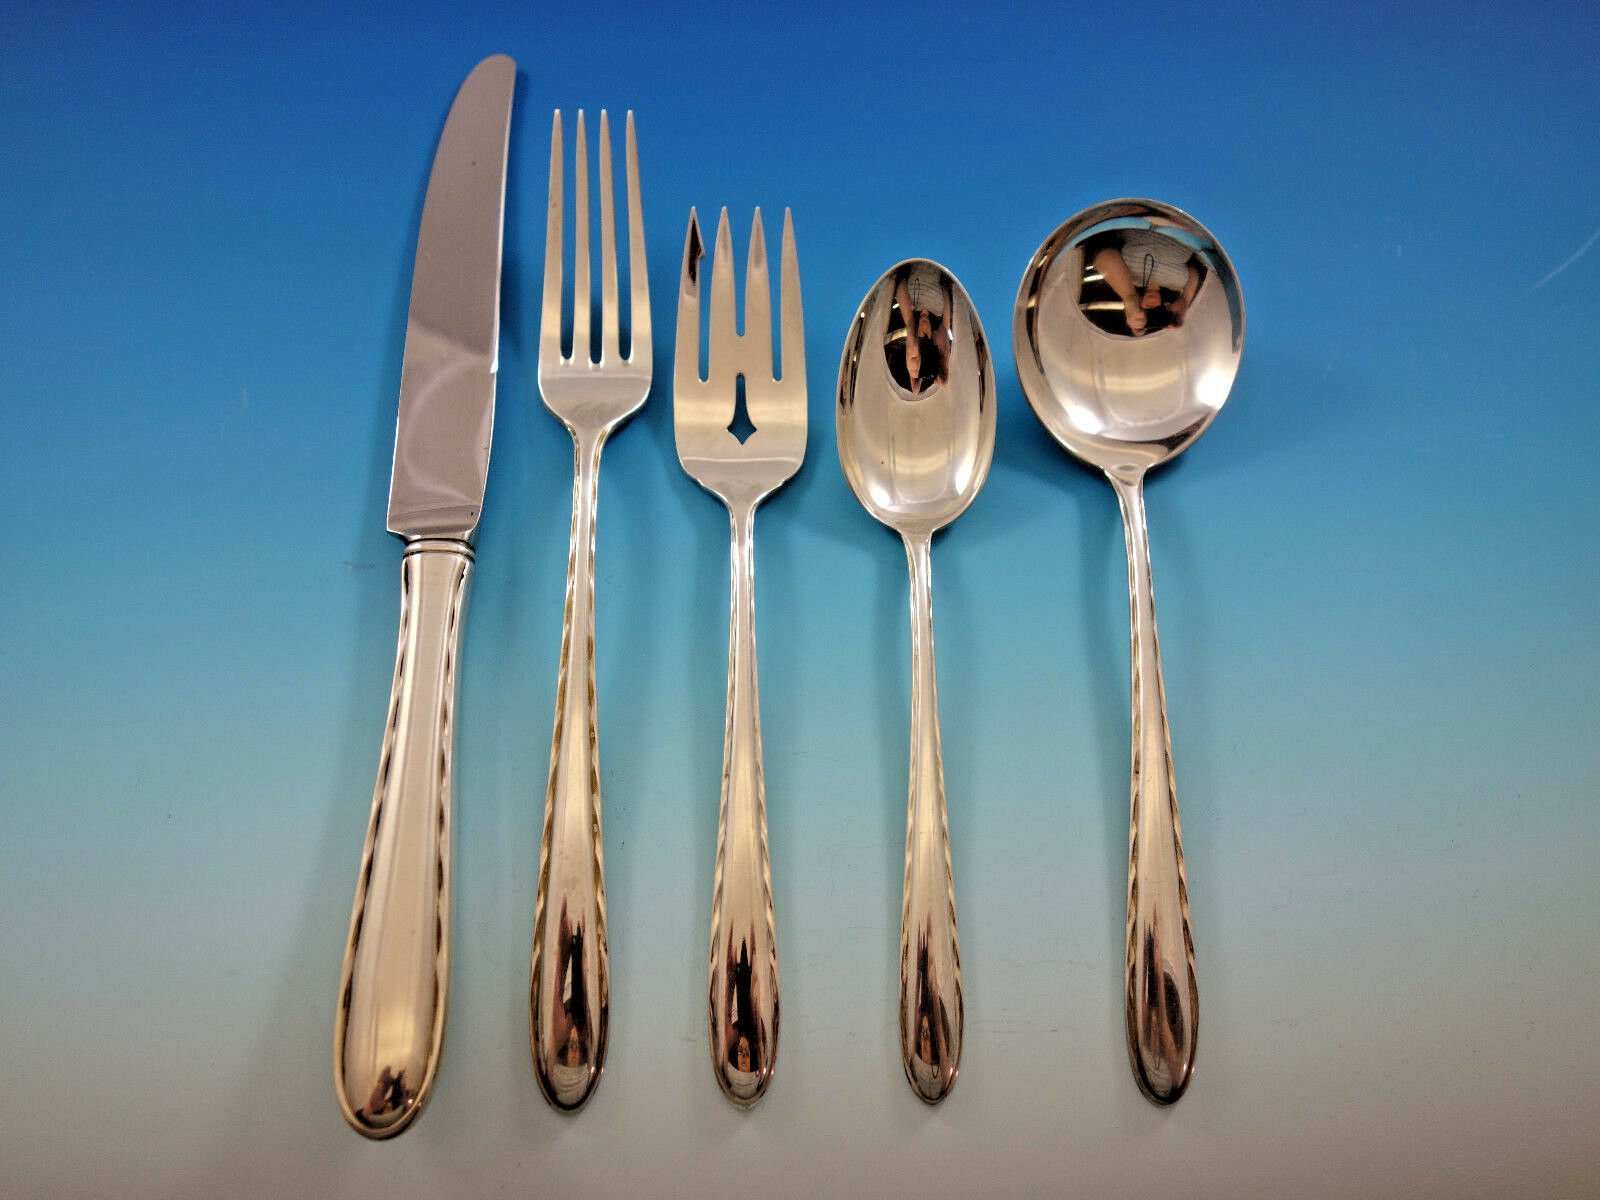 Primary image for Silver Flutes by Towle Sterling Silver Flatware Set for 48 Service 253 pcs